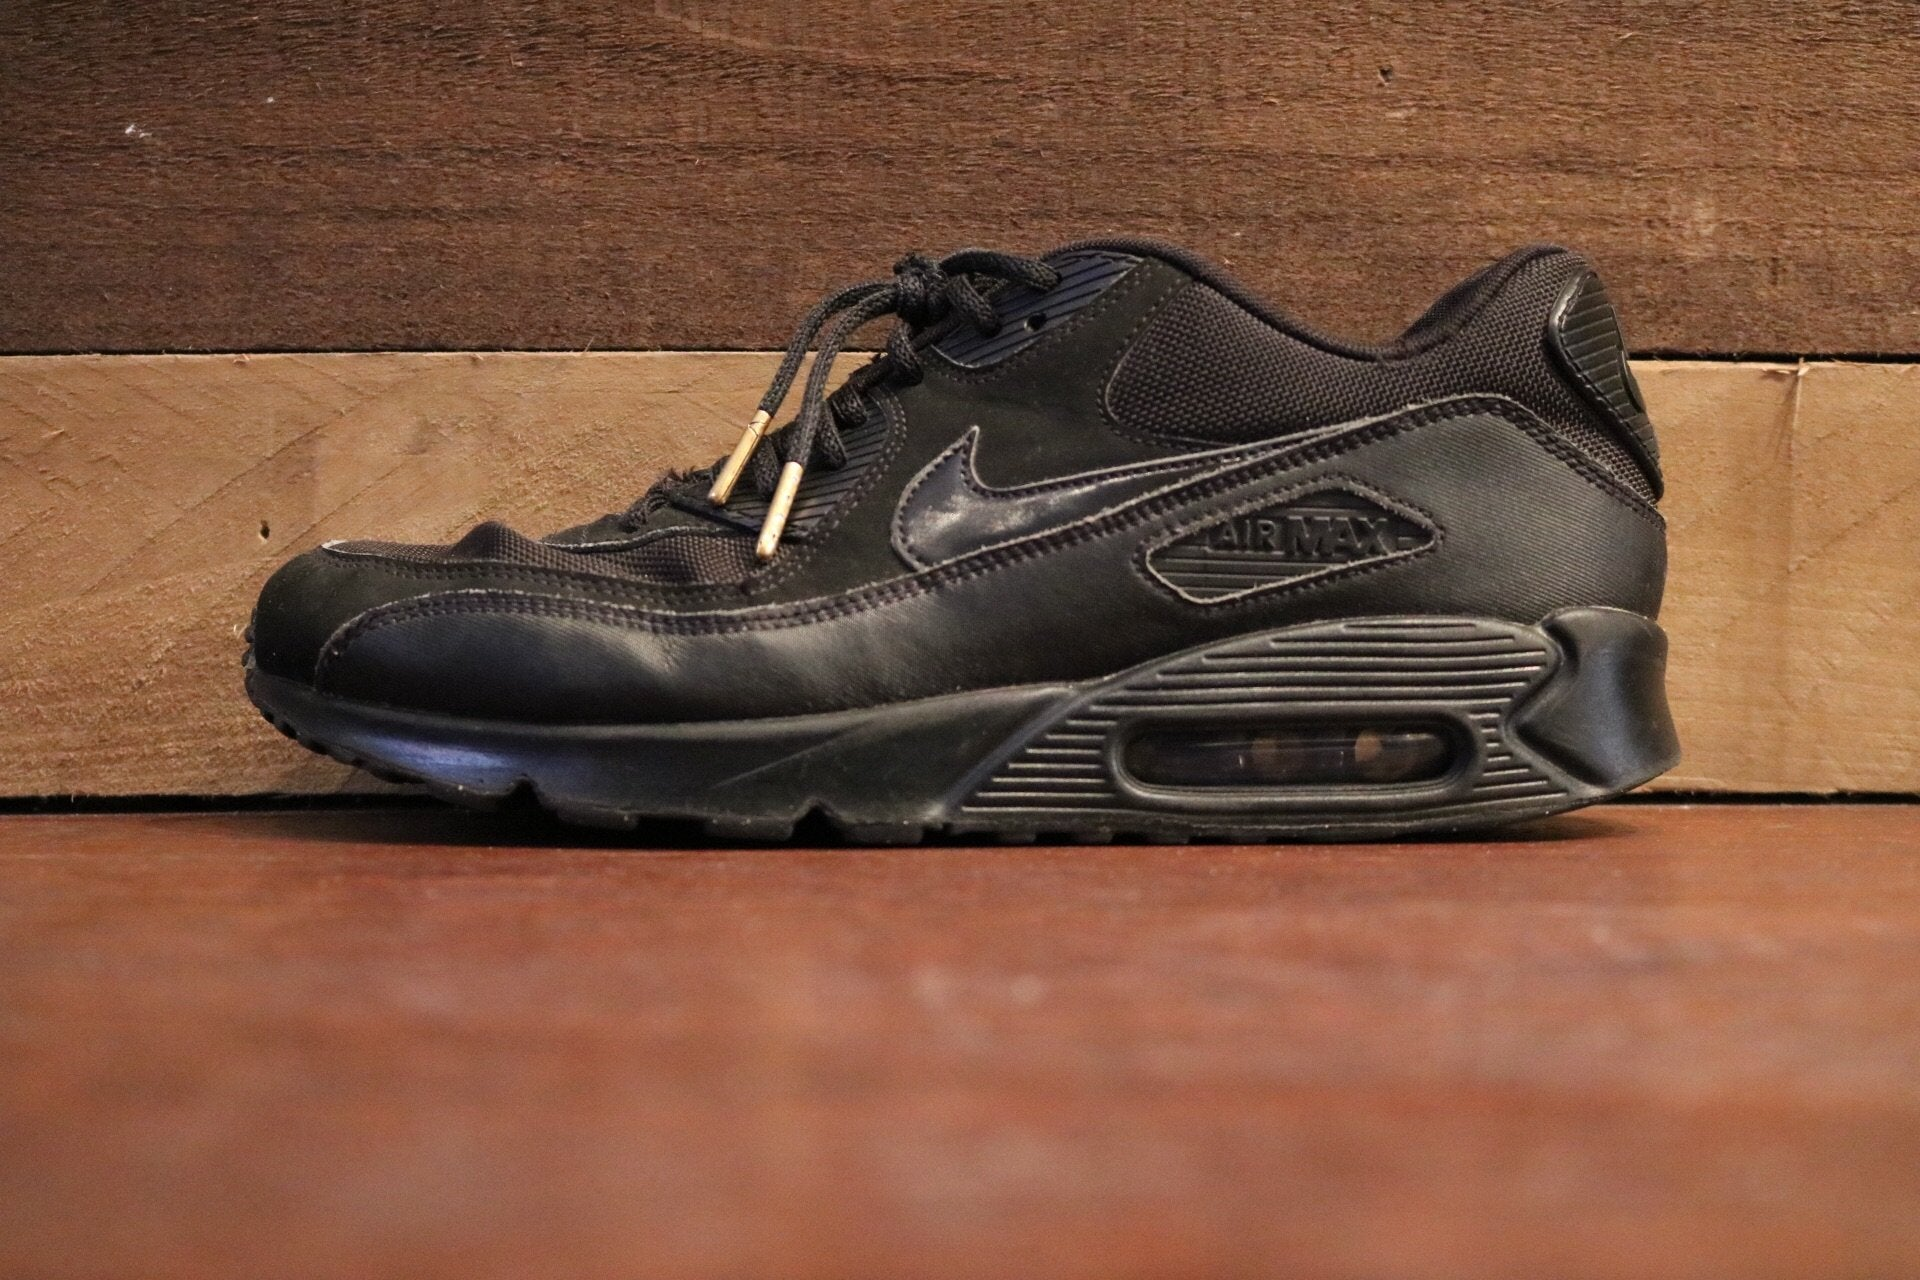 733addc4c312 Air Max 90 Triple Black (2018)